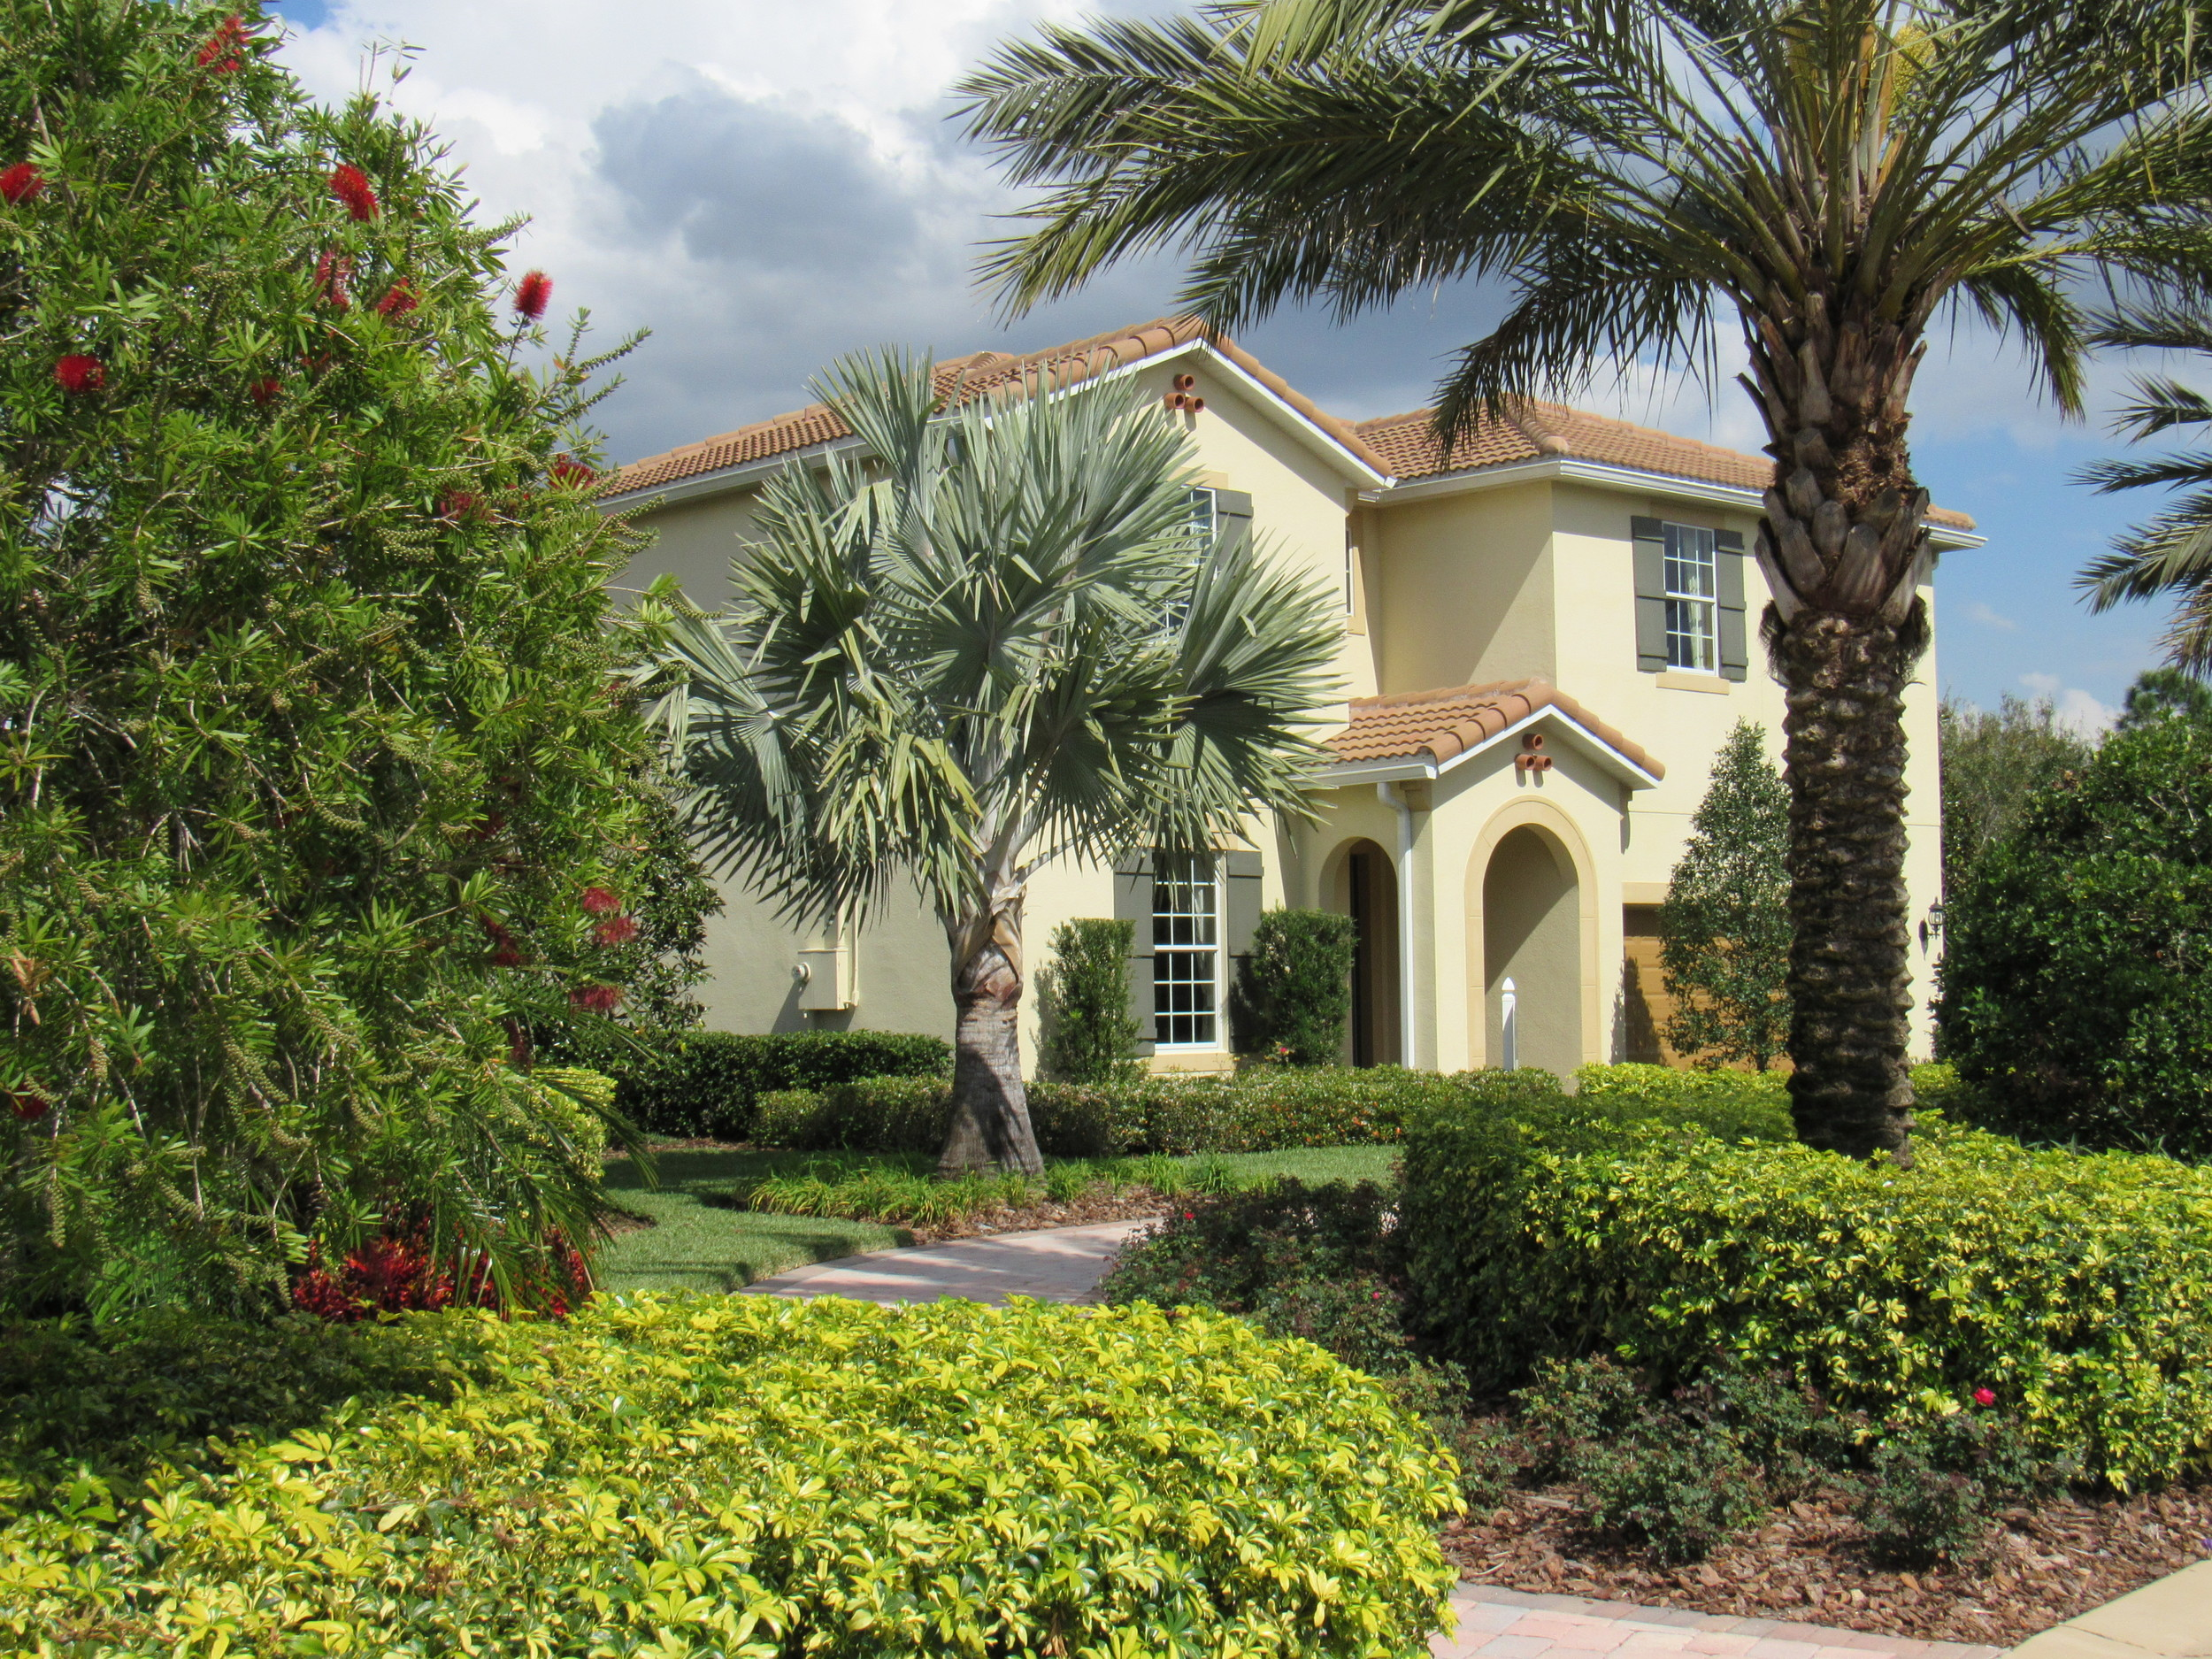 Village Walk at Lake Nona